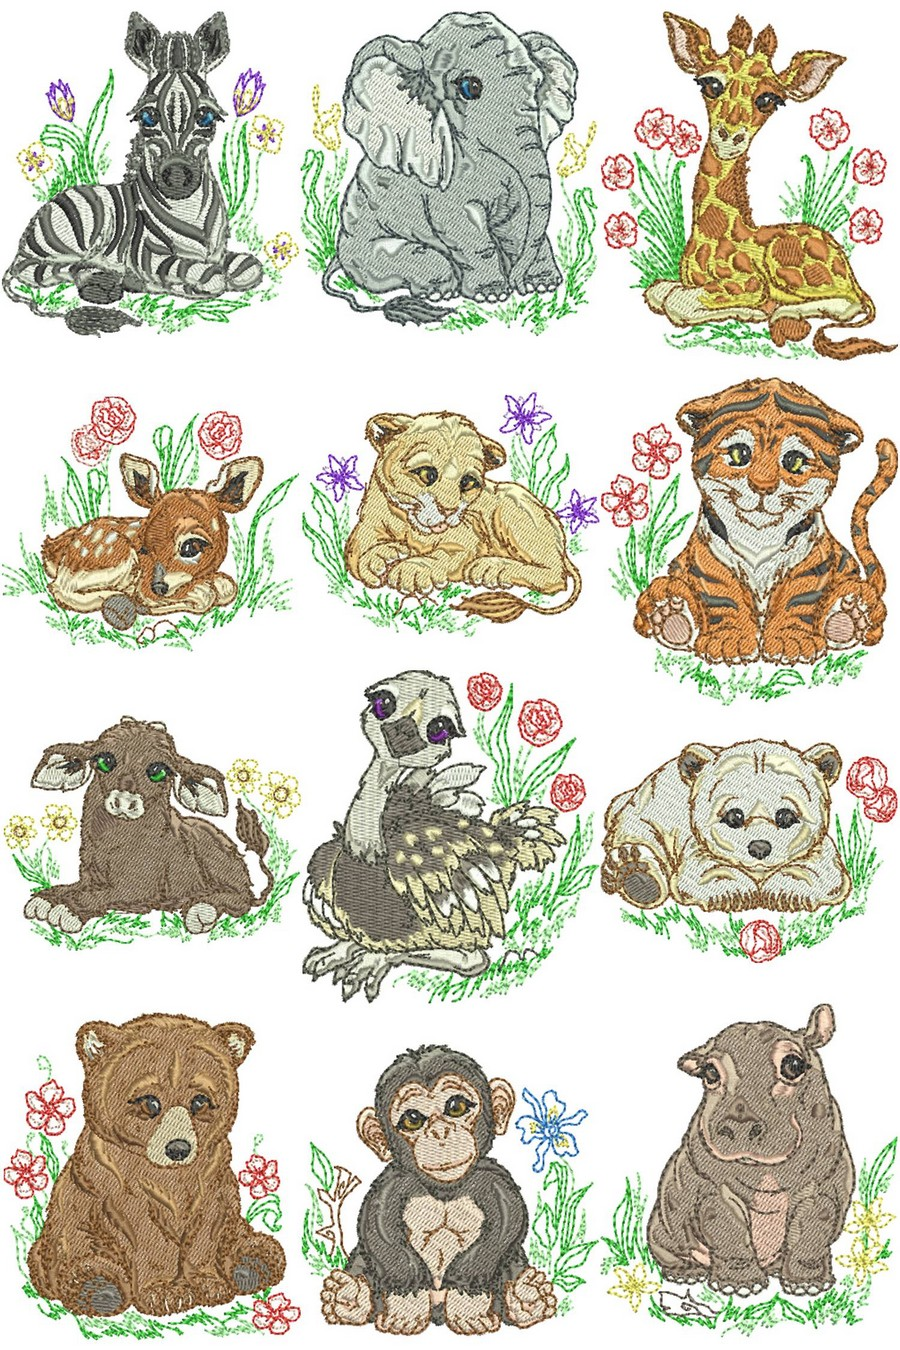 Zoo animals embroidery designs bing images